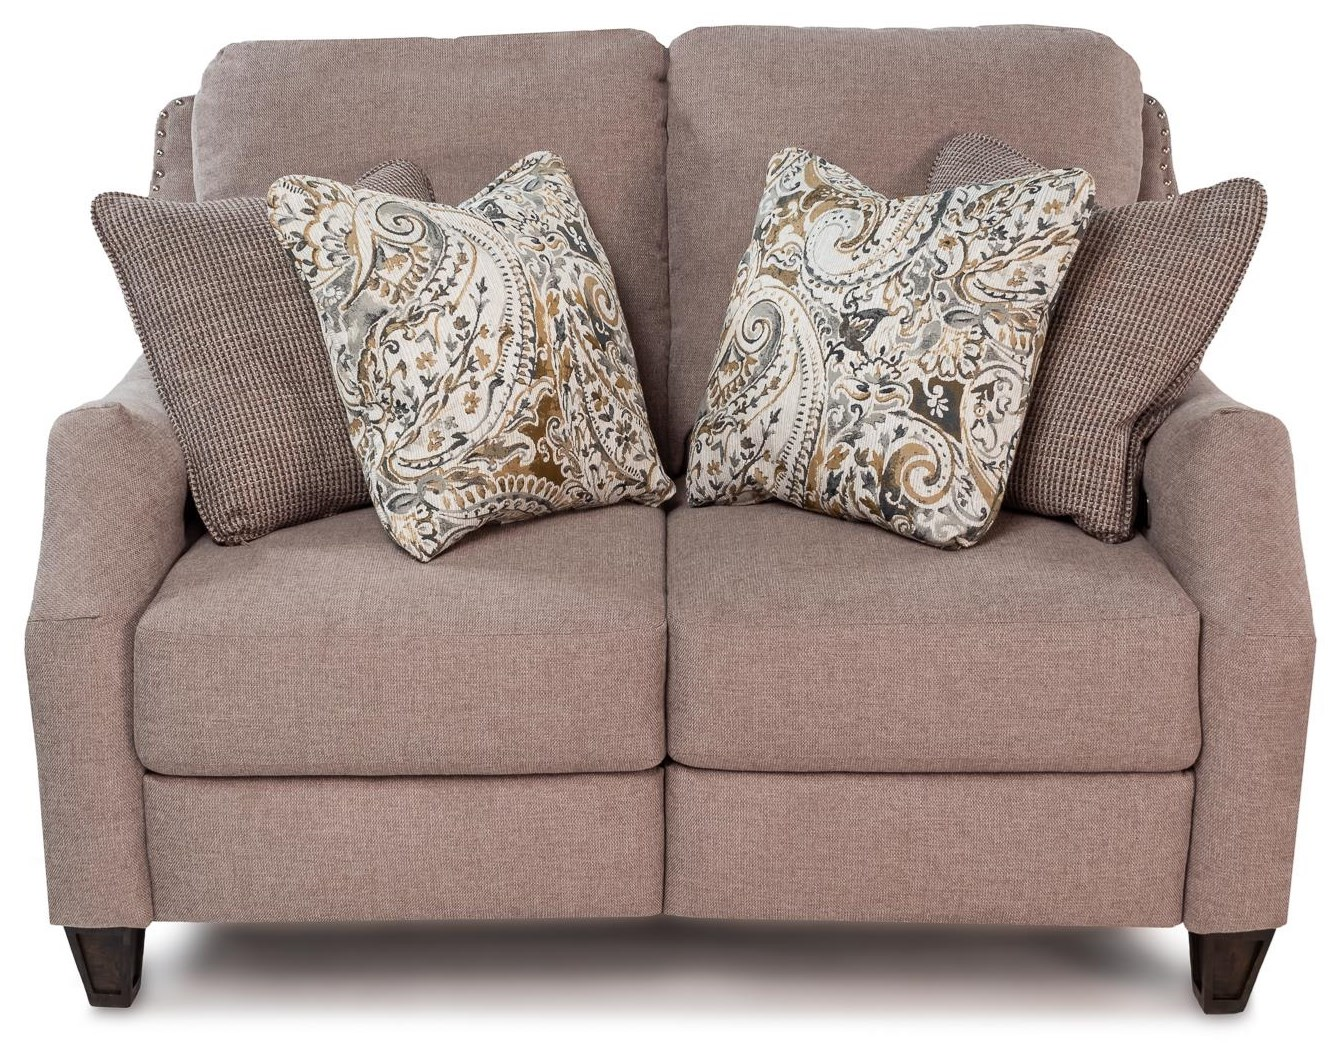 Power Loveseat with Pillows